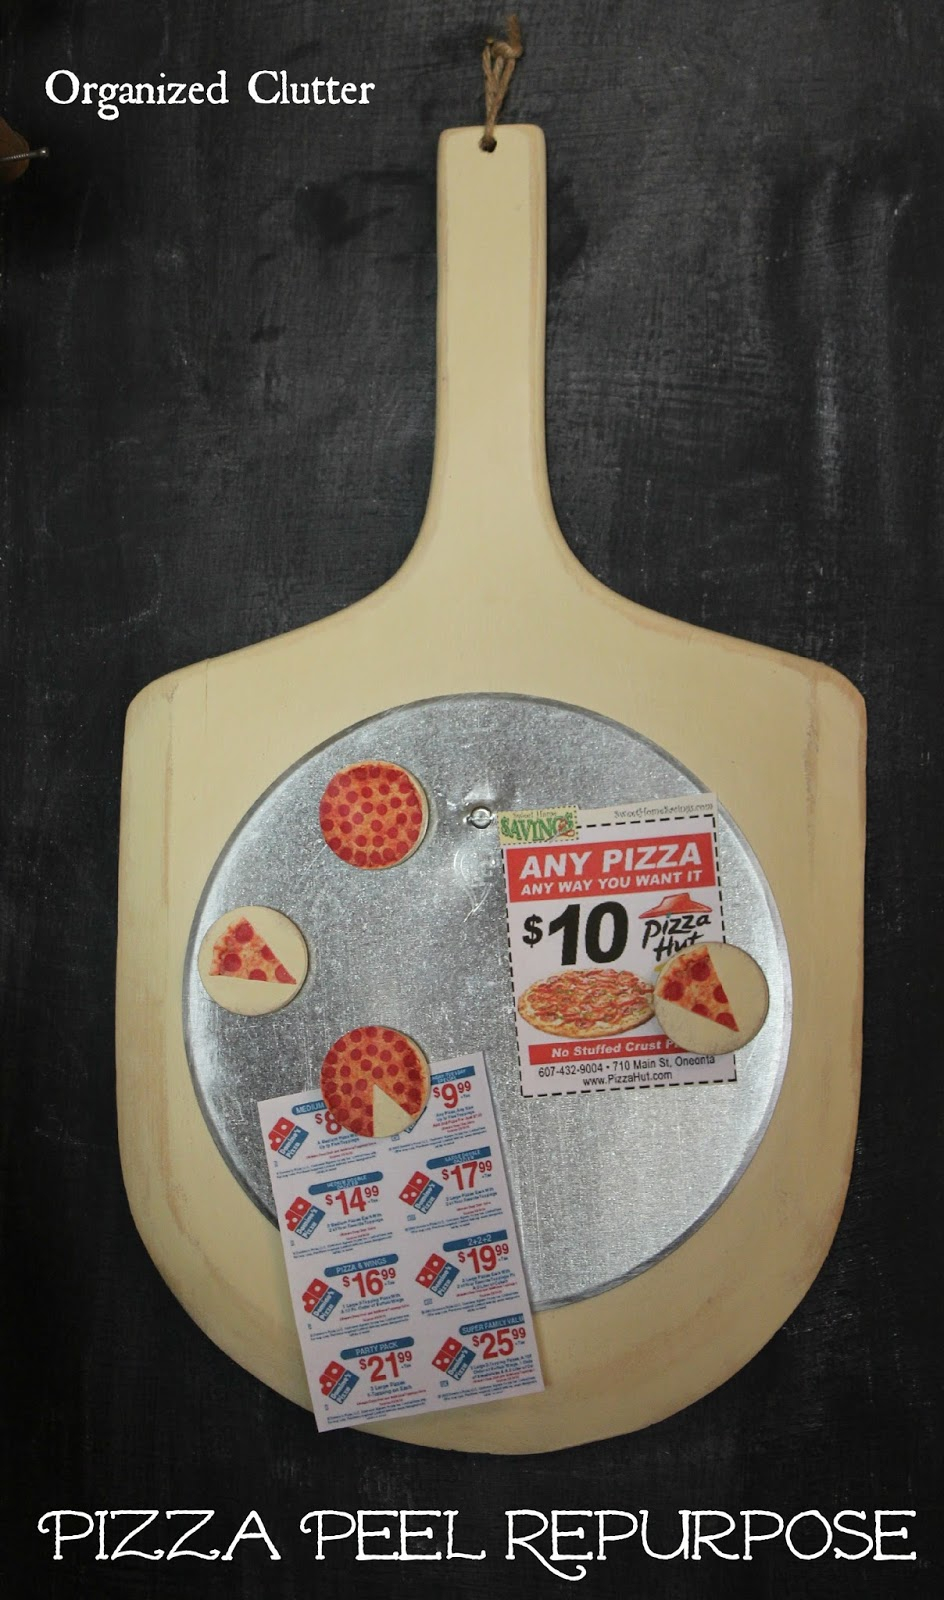 Repurposed Pizza Peel Message Board www.organizedclutter.net